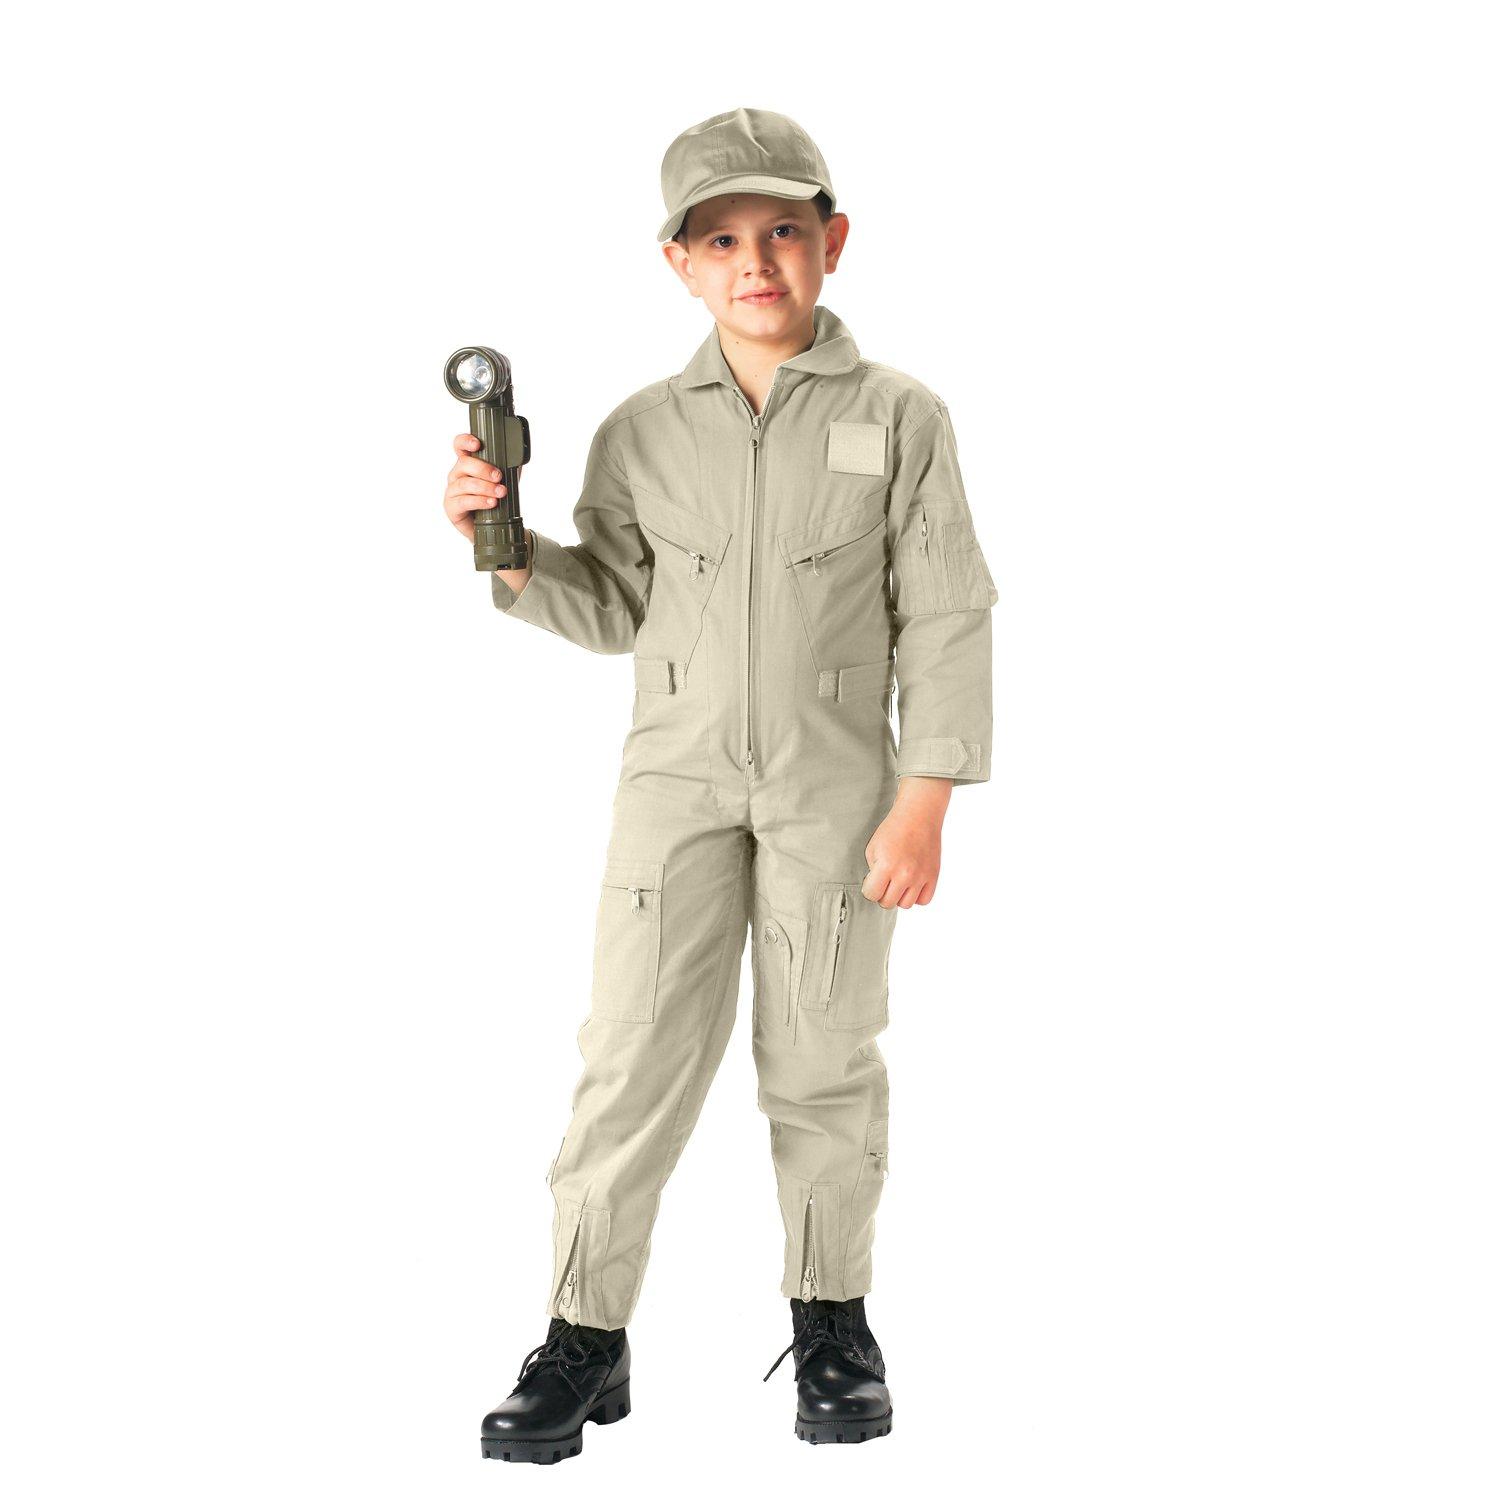 Amazon.com  Rothco Kids Air Force Type Flightsuit  Sports   Outdoors a5660a1379a